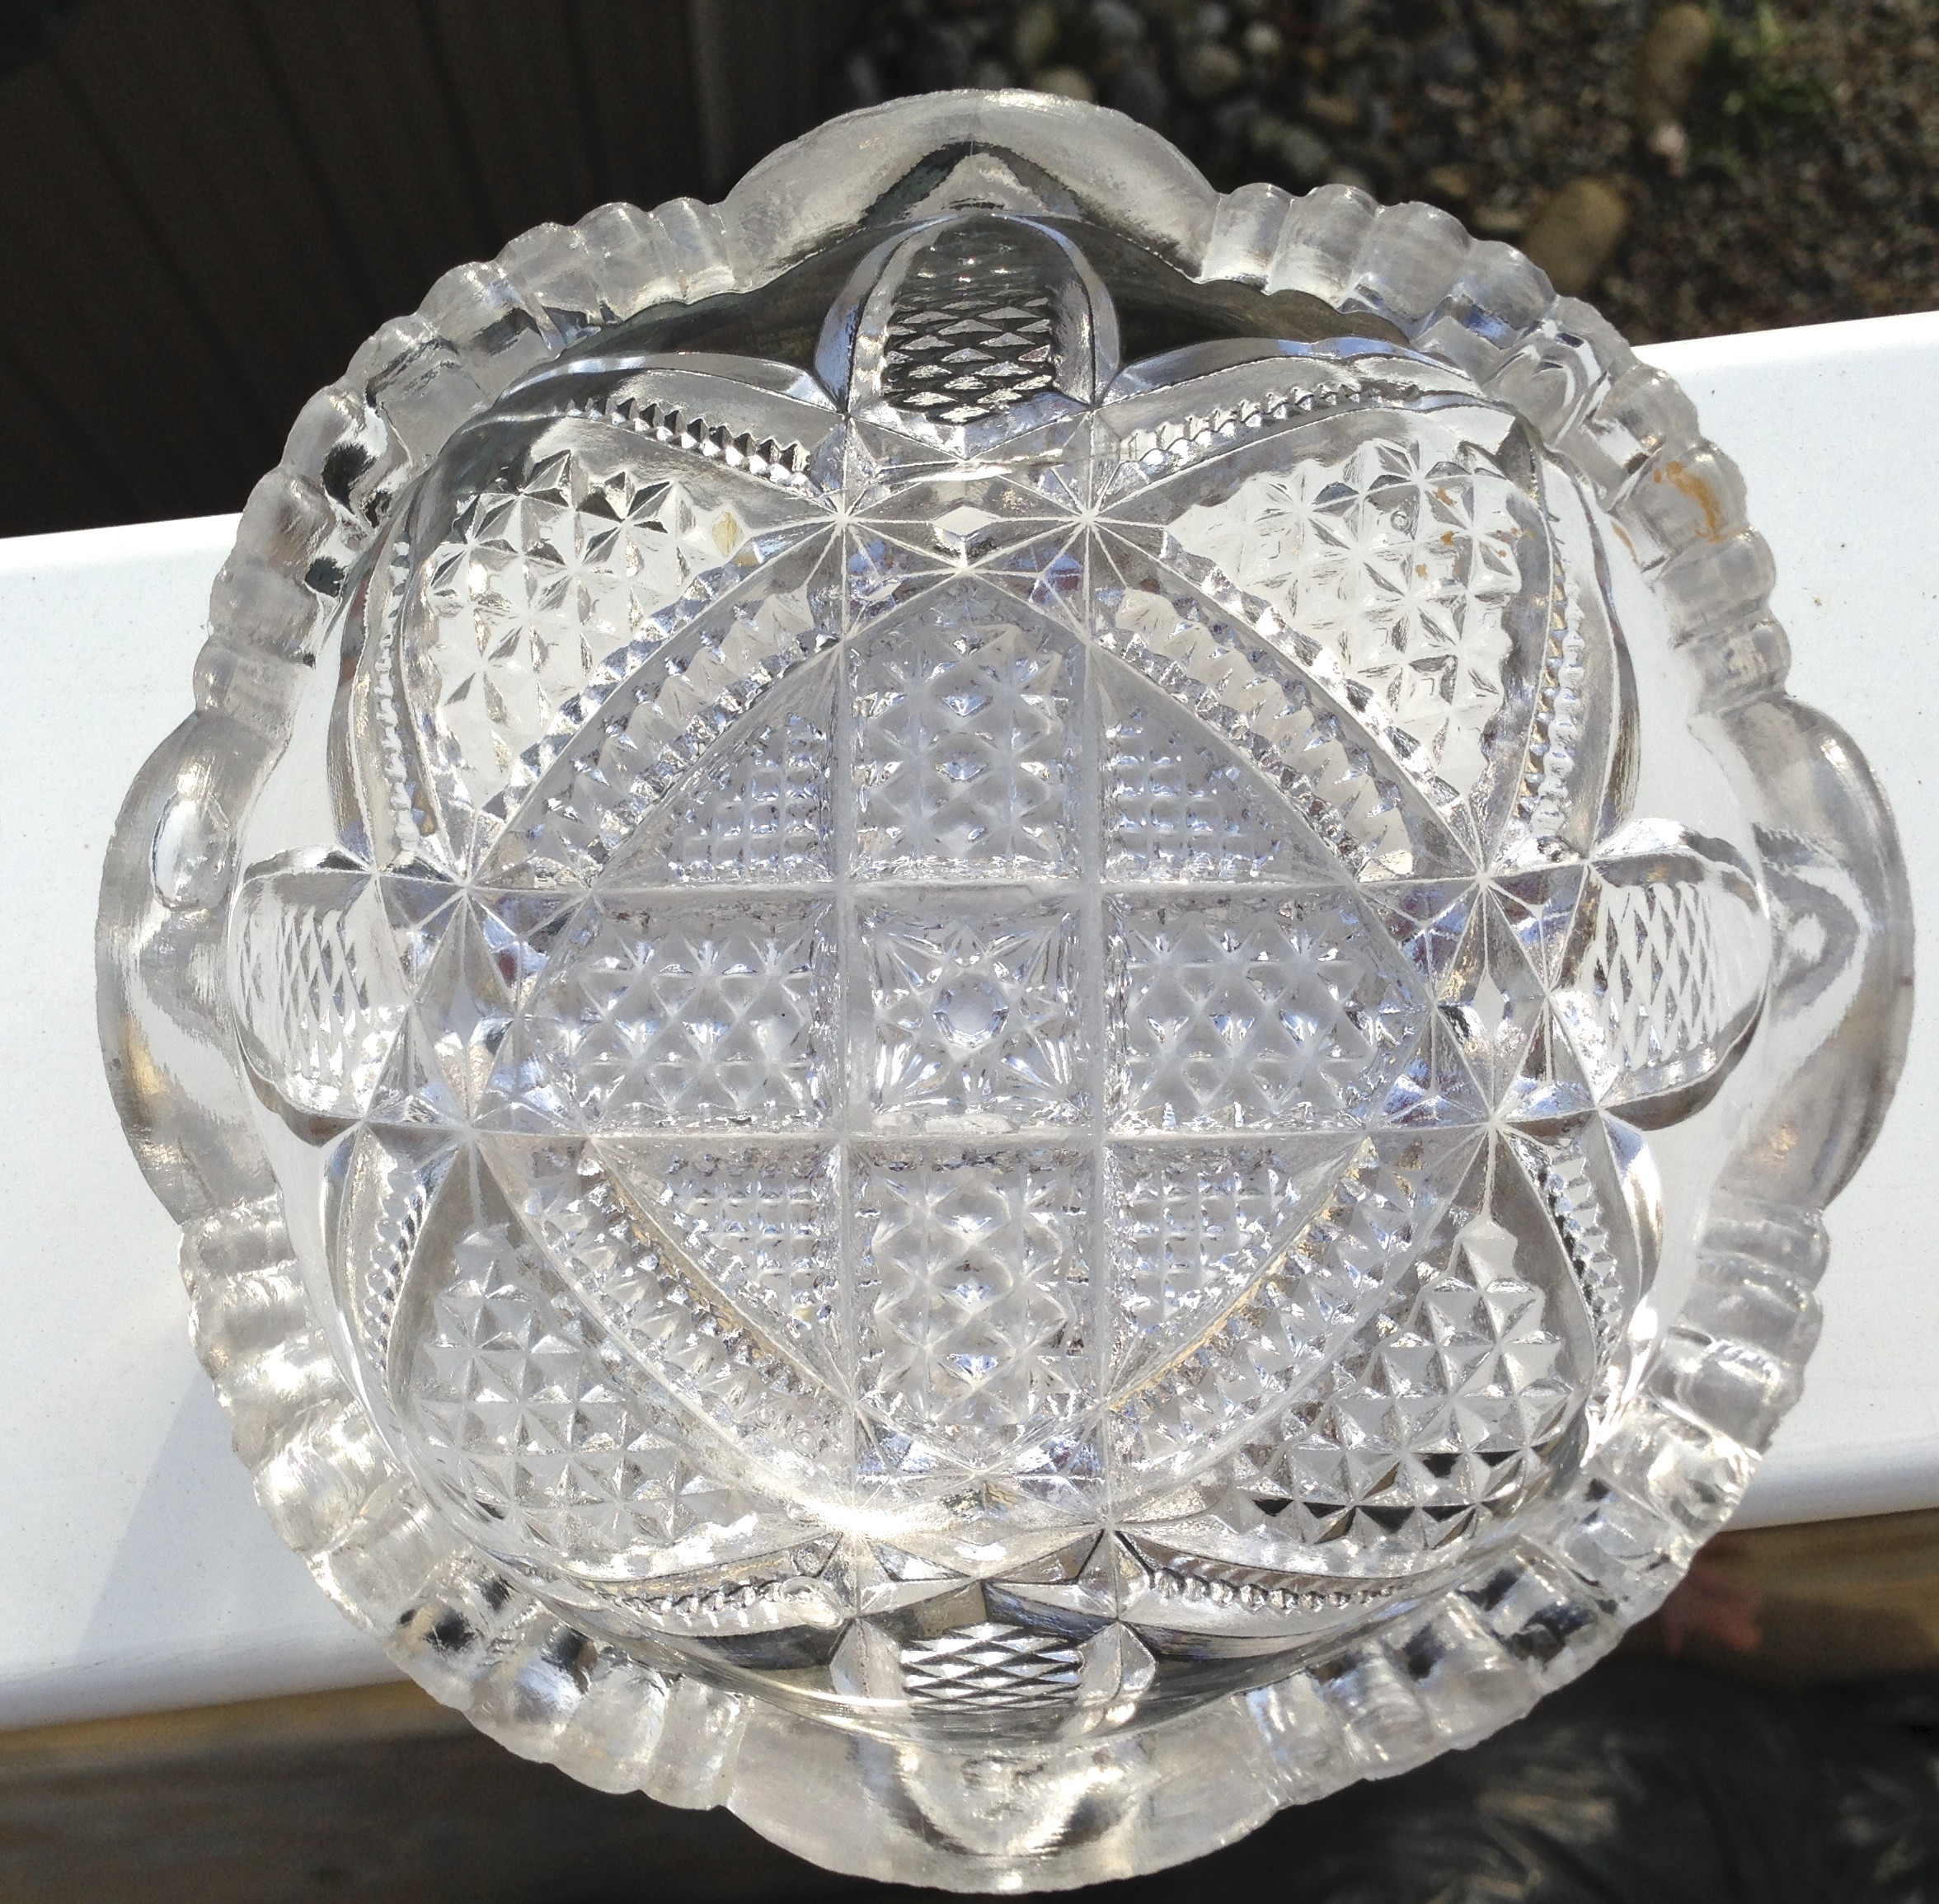 american brilliant cut glass vase of is it pressed glass or cut glass janvier road where old becomes intended for no mold lines sharp cuts and it flouresces under black light yet its